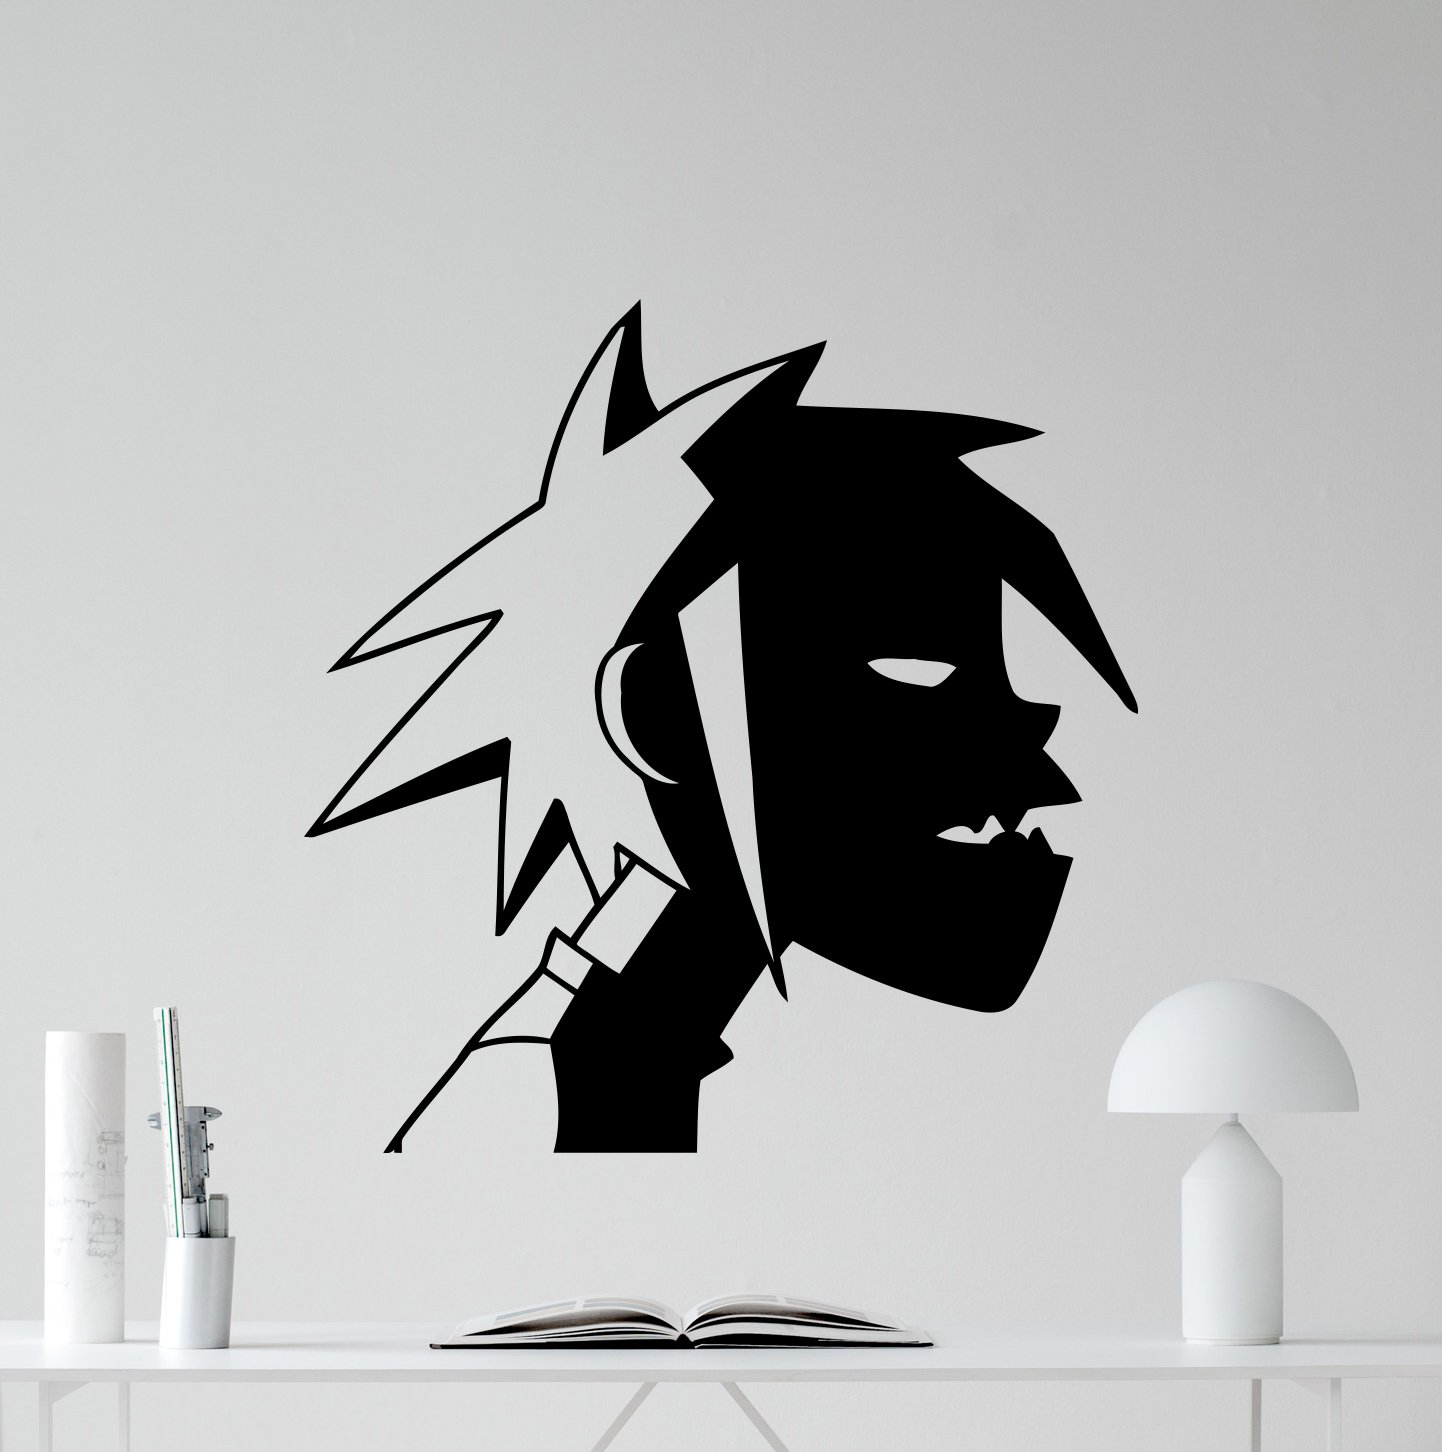 amazon com 2d gorillaz wall decal alternative music band vinyl amazon com 2d gorillaz wall decal alternative music band vinyl sticker music studio decal rock wall art design housewares teens room nursery bedroom decor